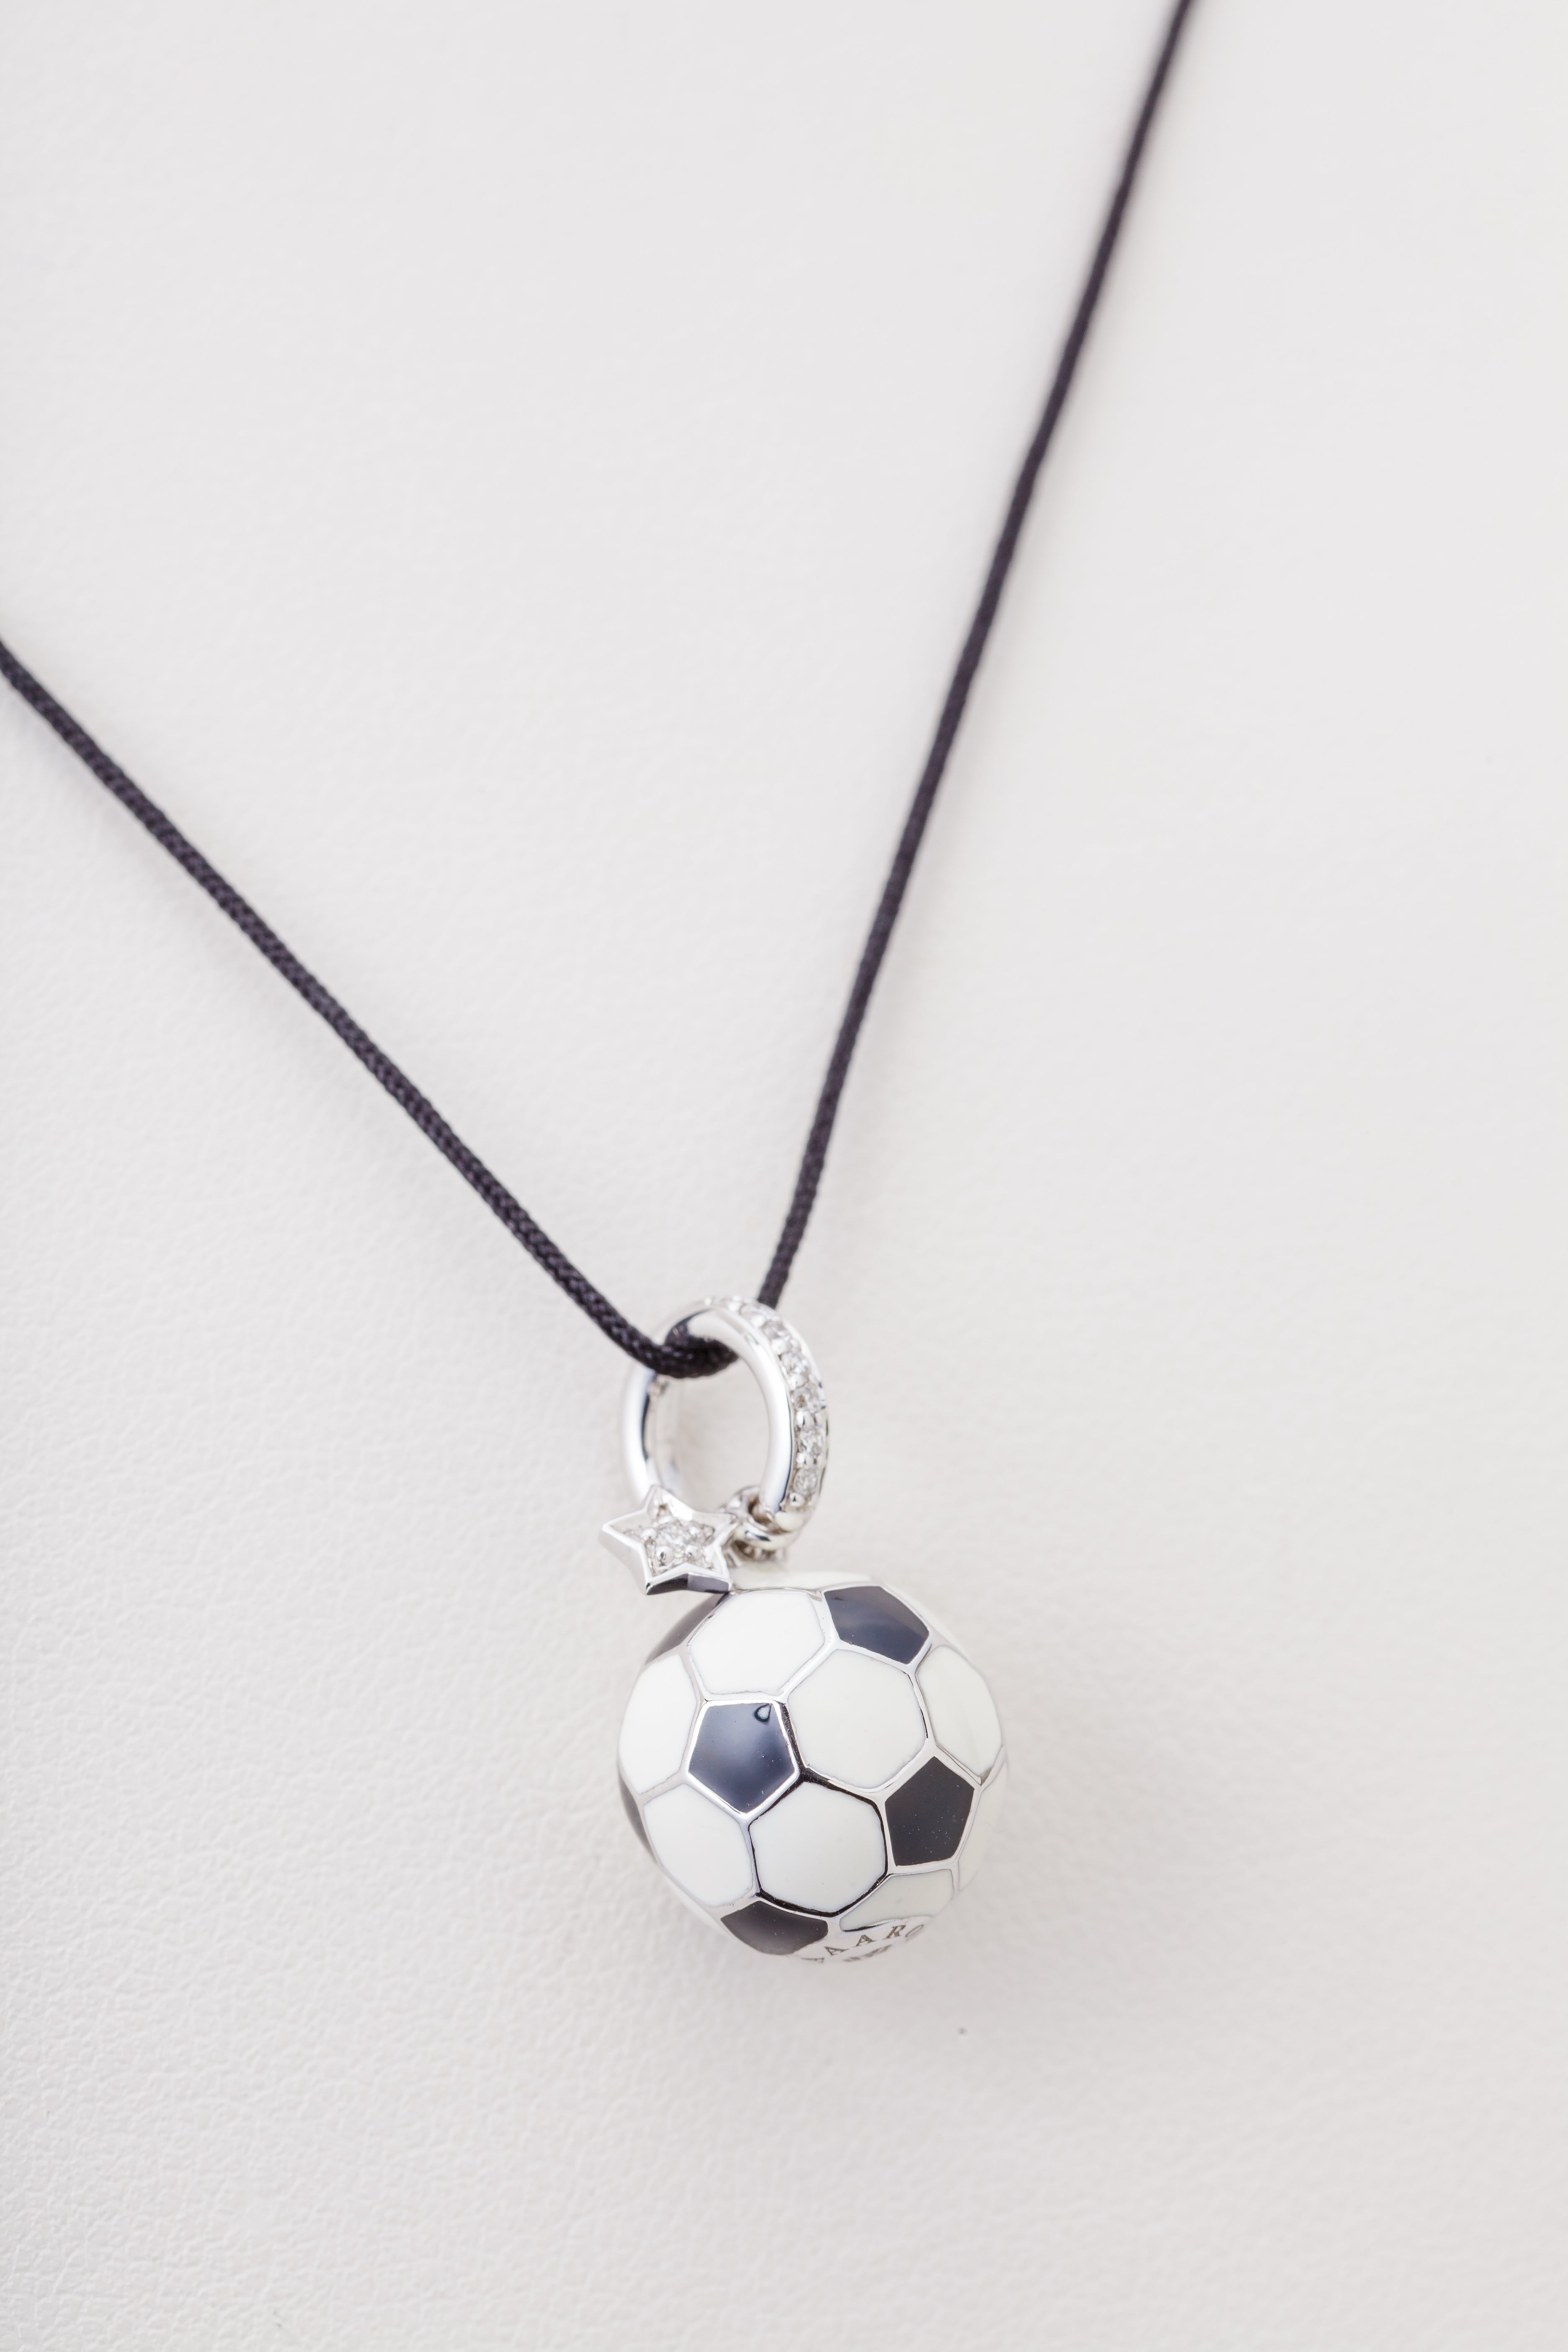 necklace elegant baseball pendant mood phil oblacoder soccer